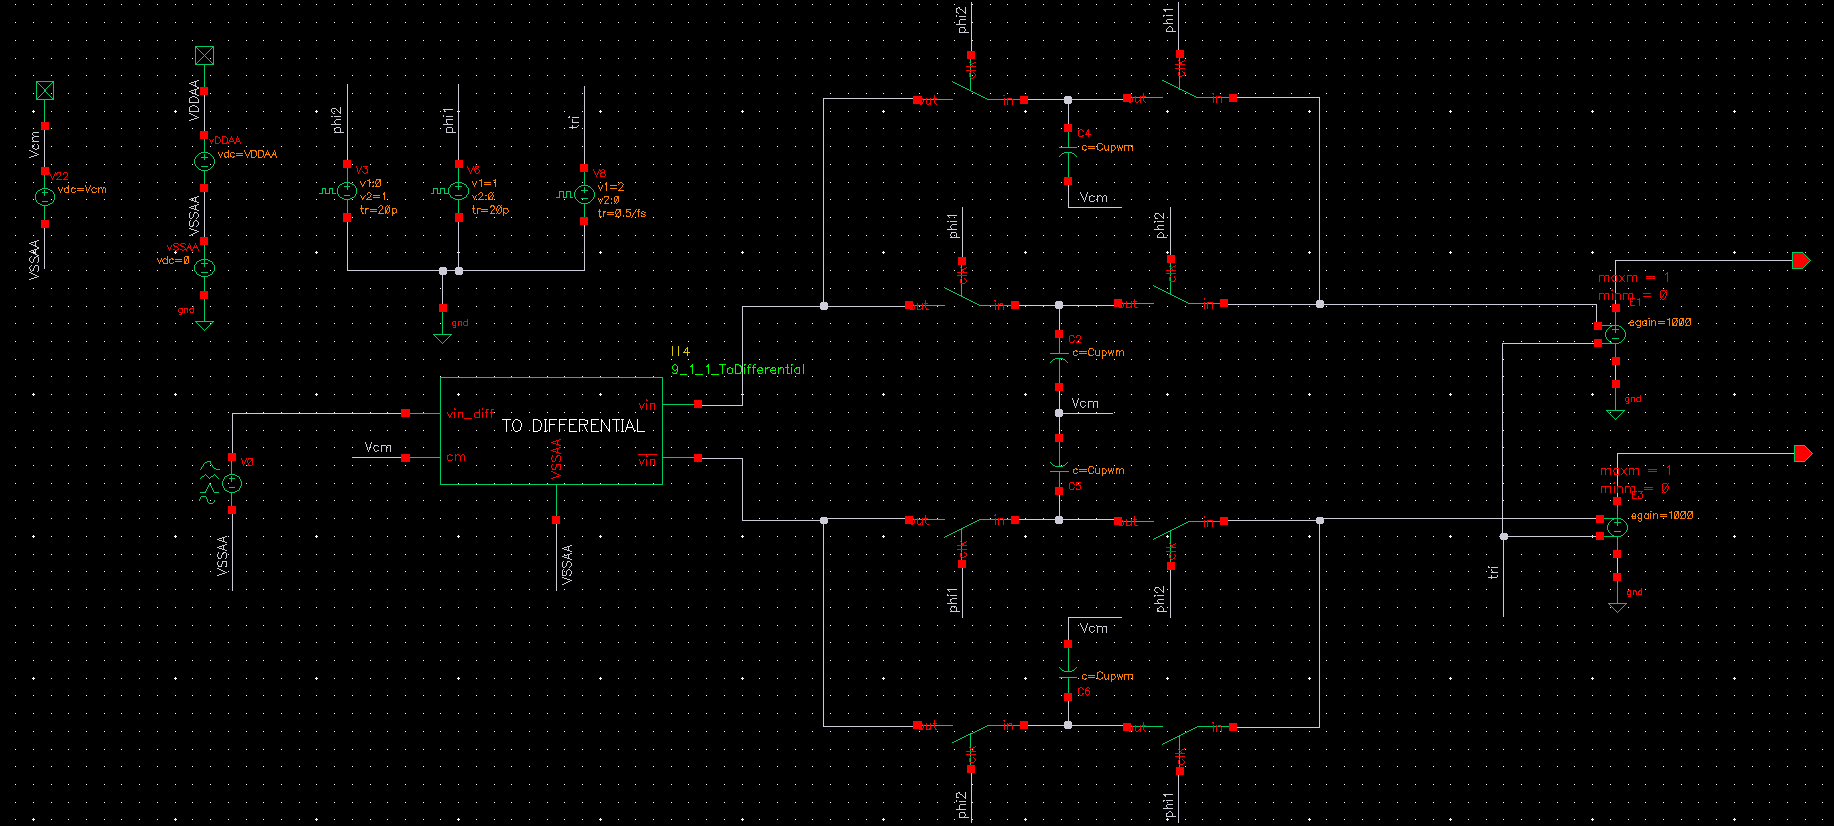 Uniform Pulse Width Modulation Closed Loop Frequency Response Pss Diy Circuit Design Pwm 1 I Used Vsource Analoglib To Be Applied The Input